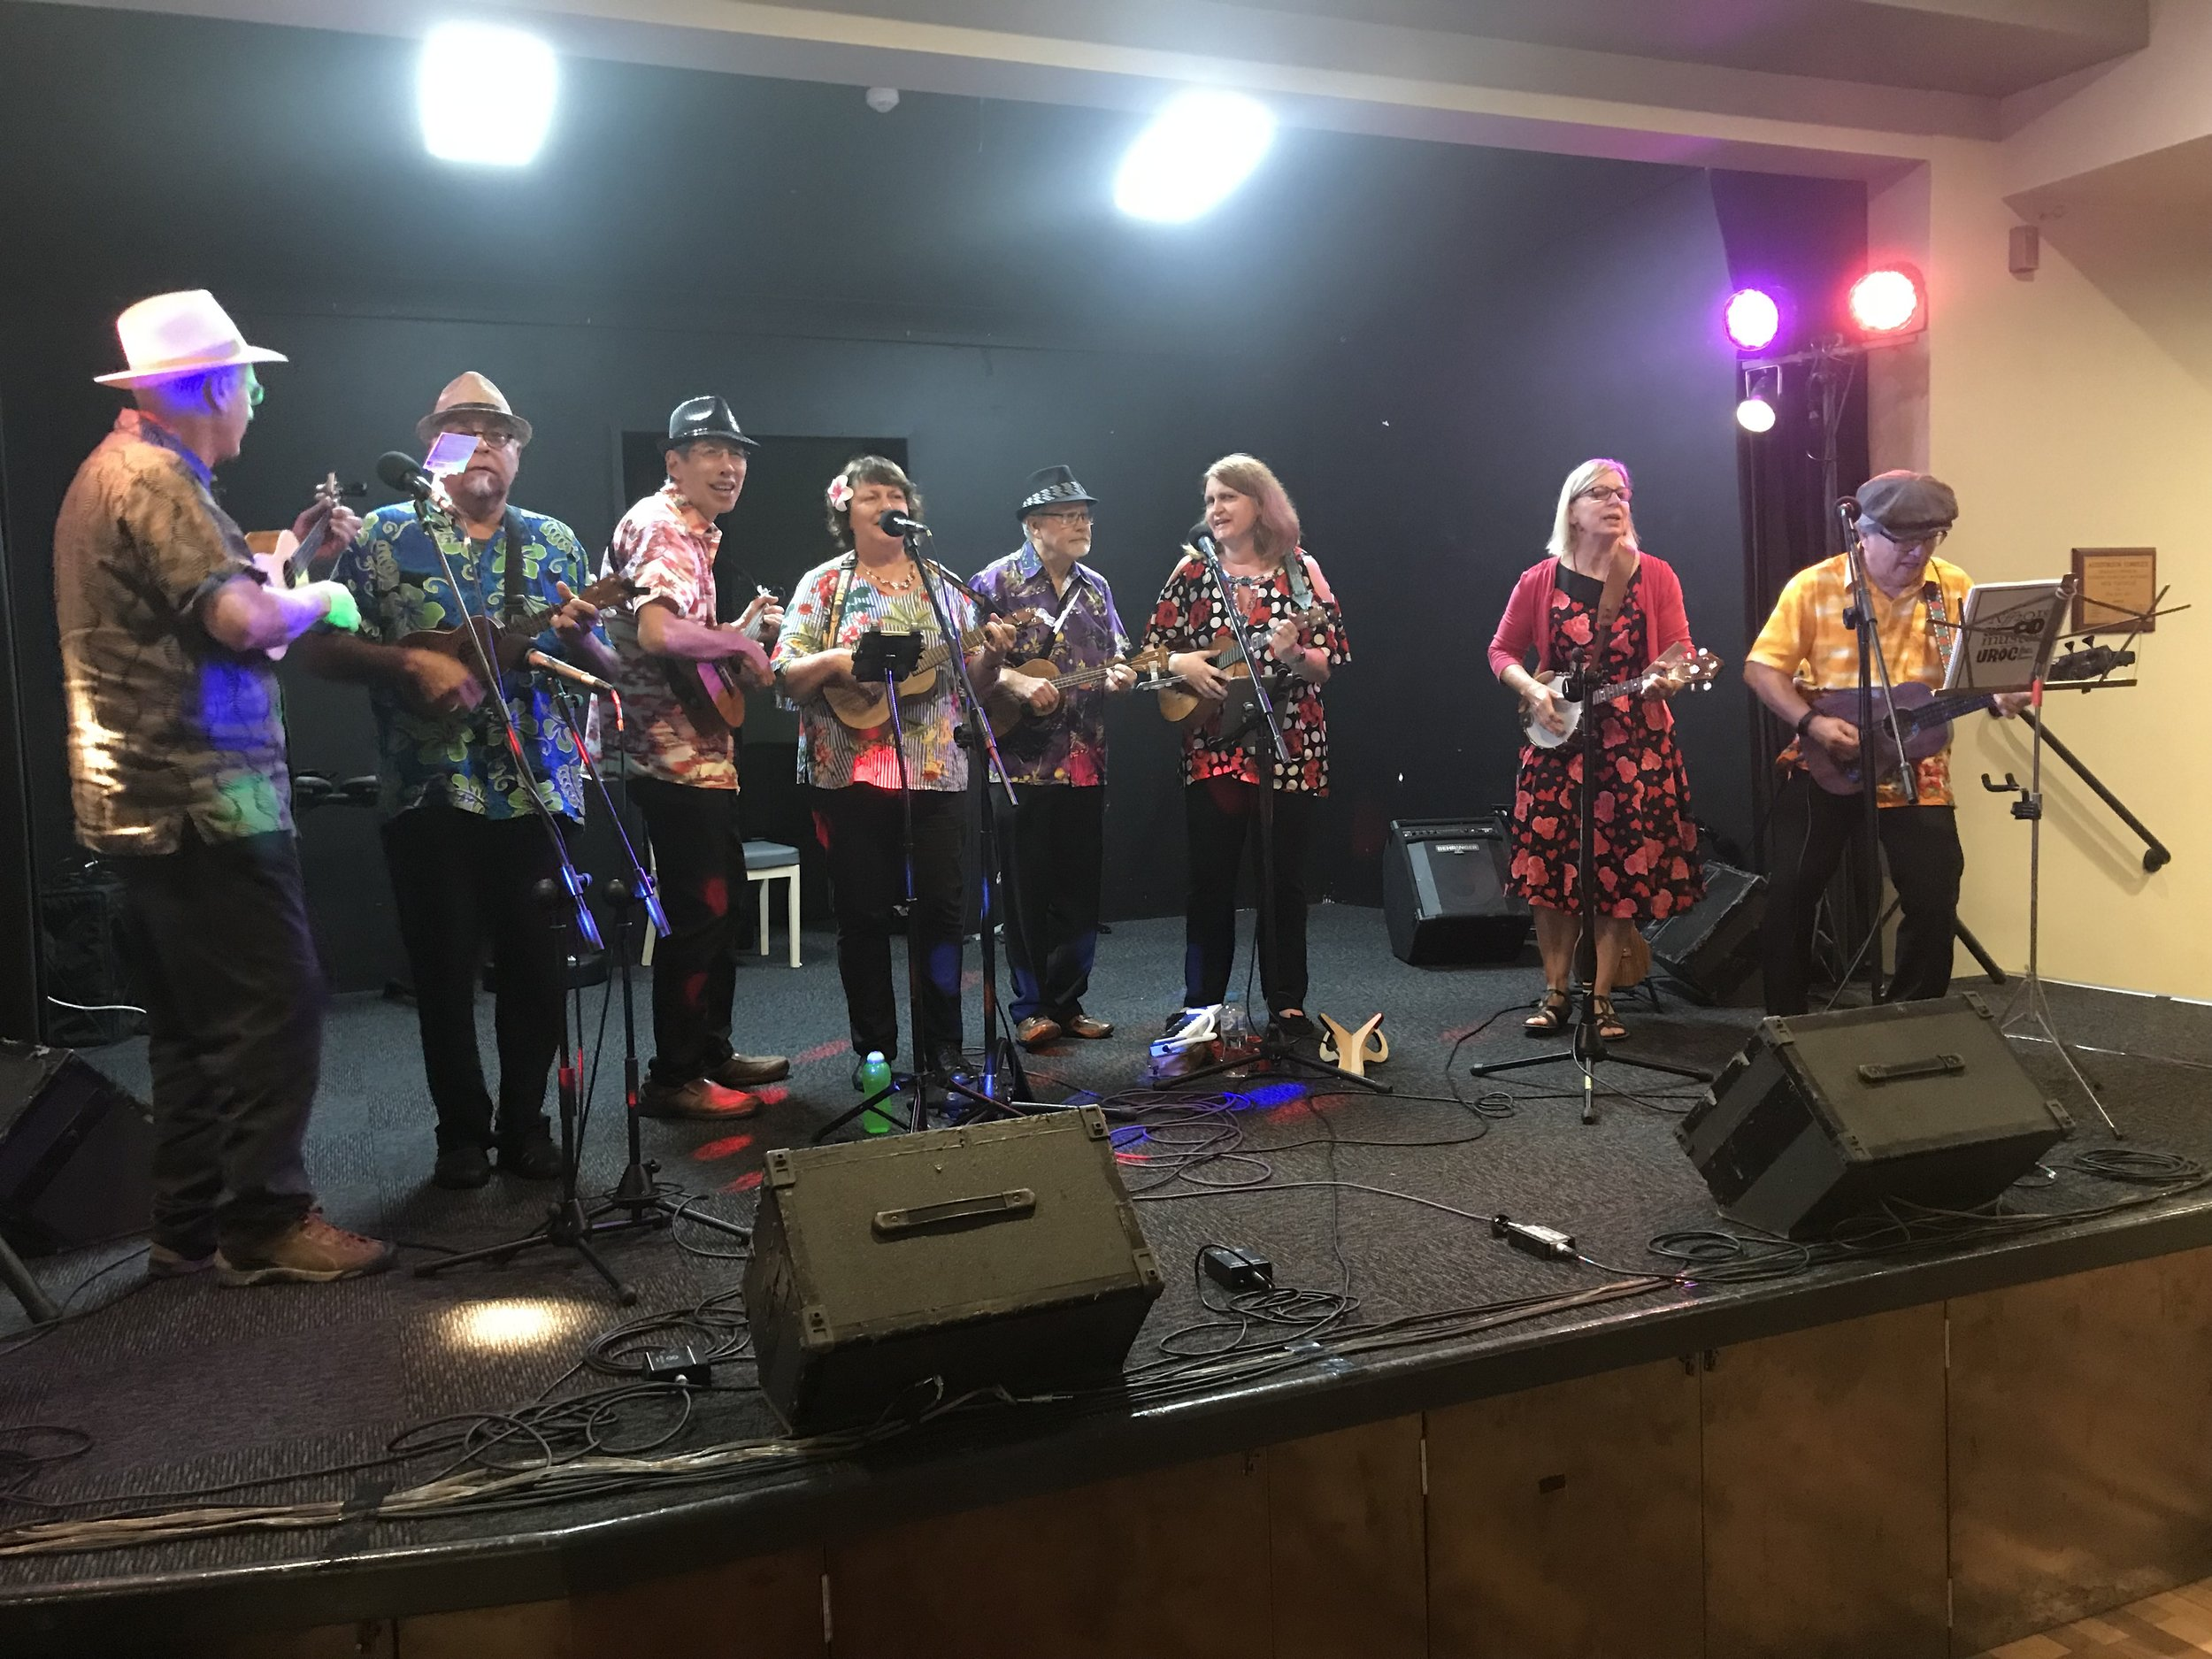 The Ukulele Republic of Canberra on stage at the Shoalhaven Heads Ukulele Festival in April 2018 -